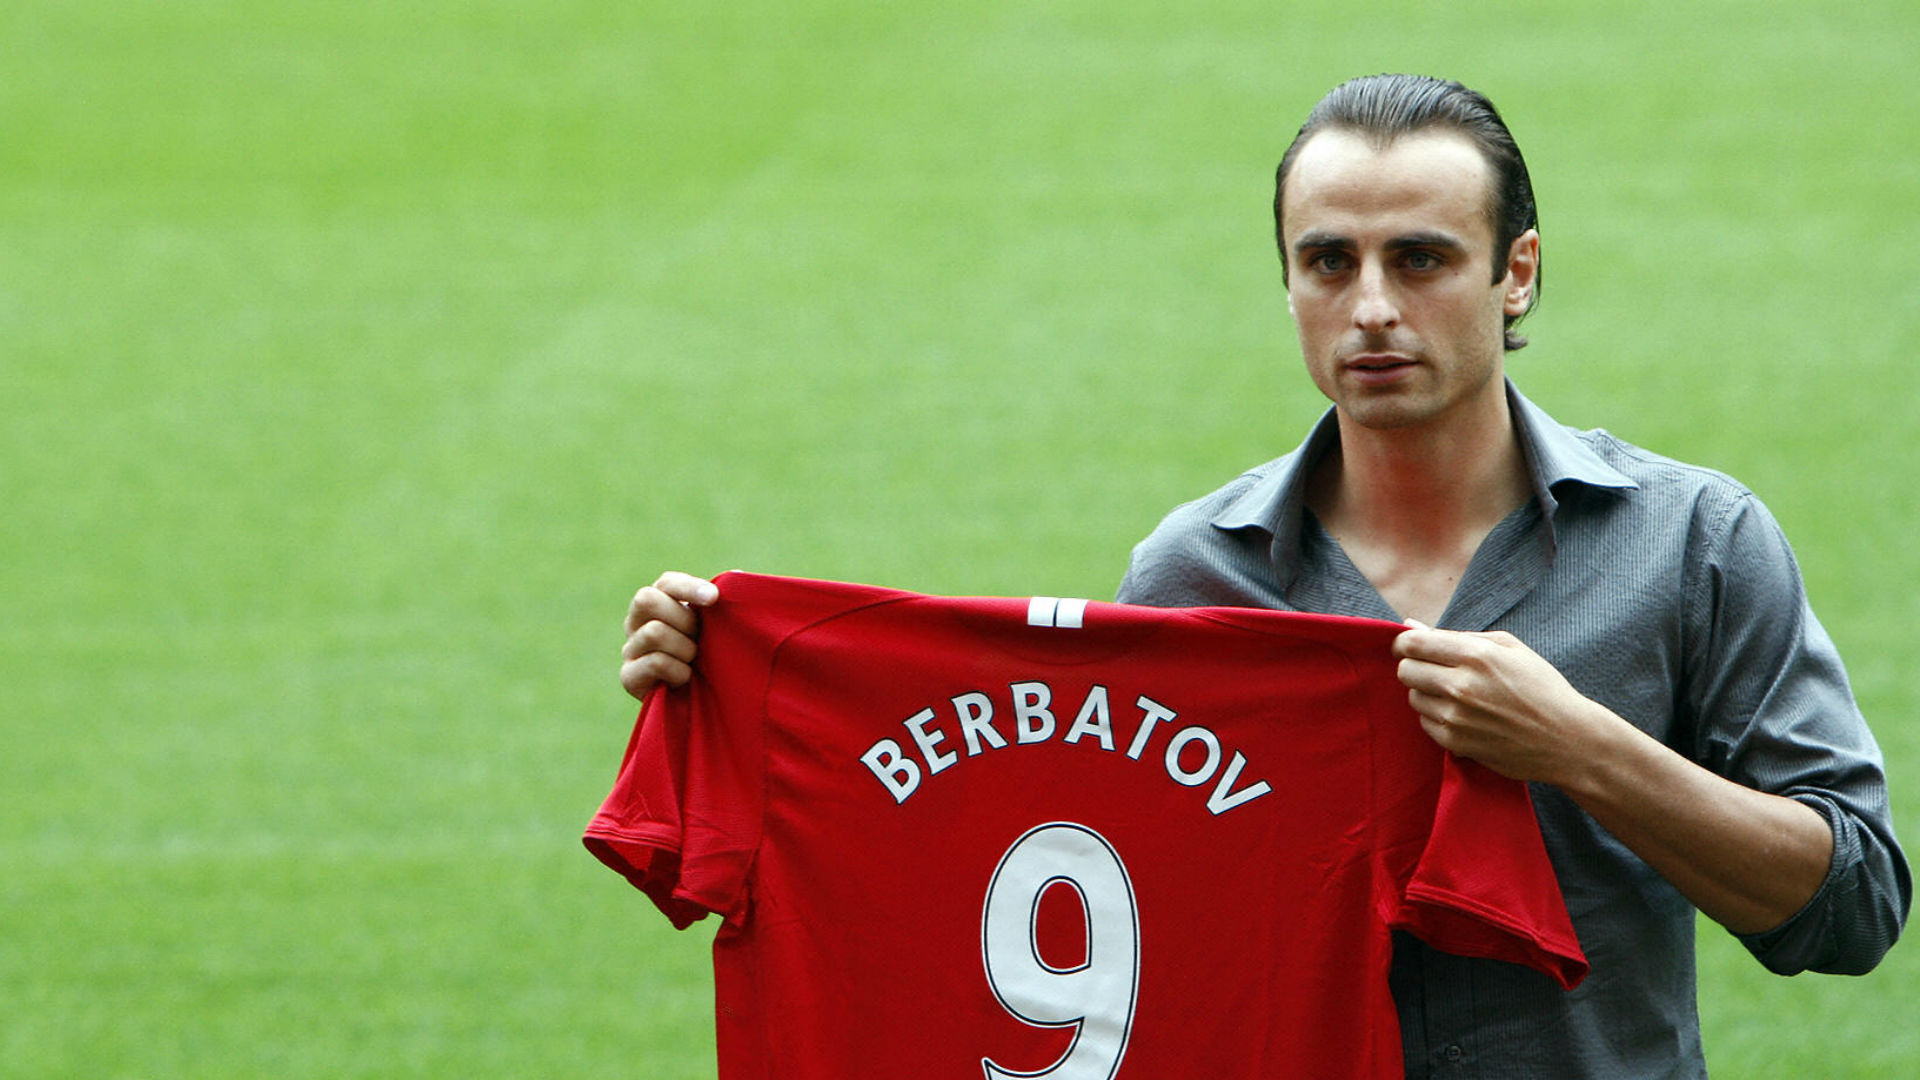 Image result for berbatov